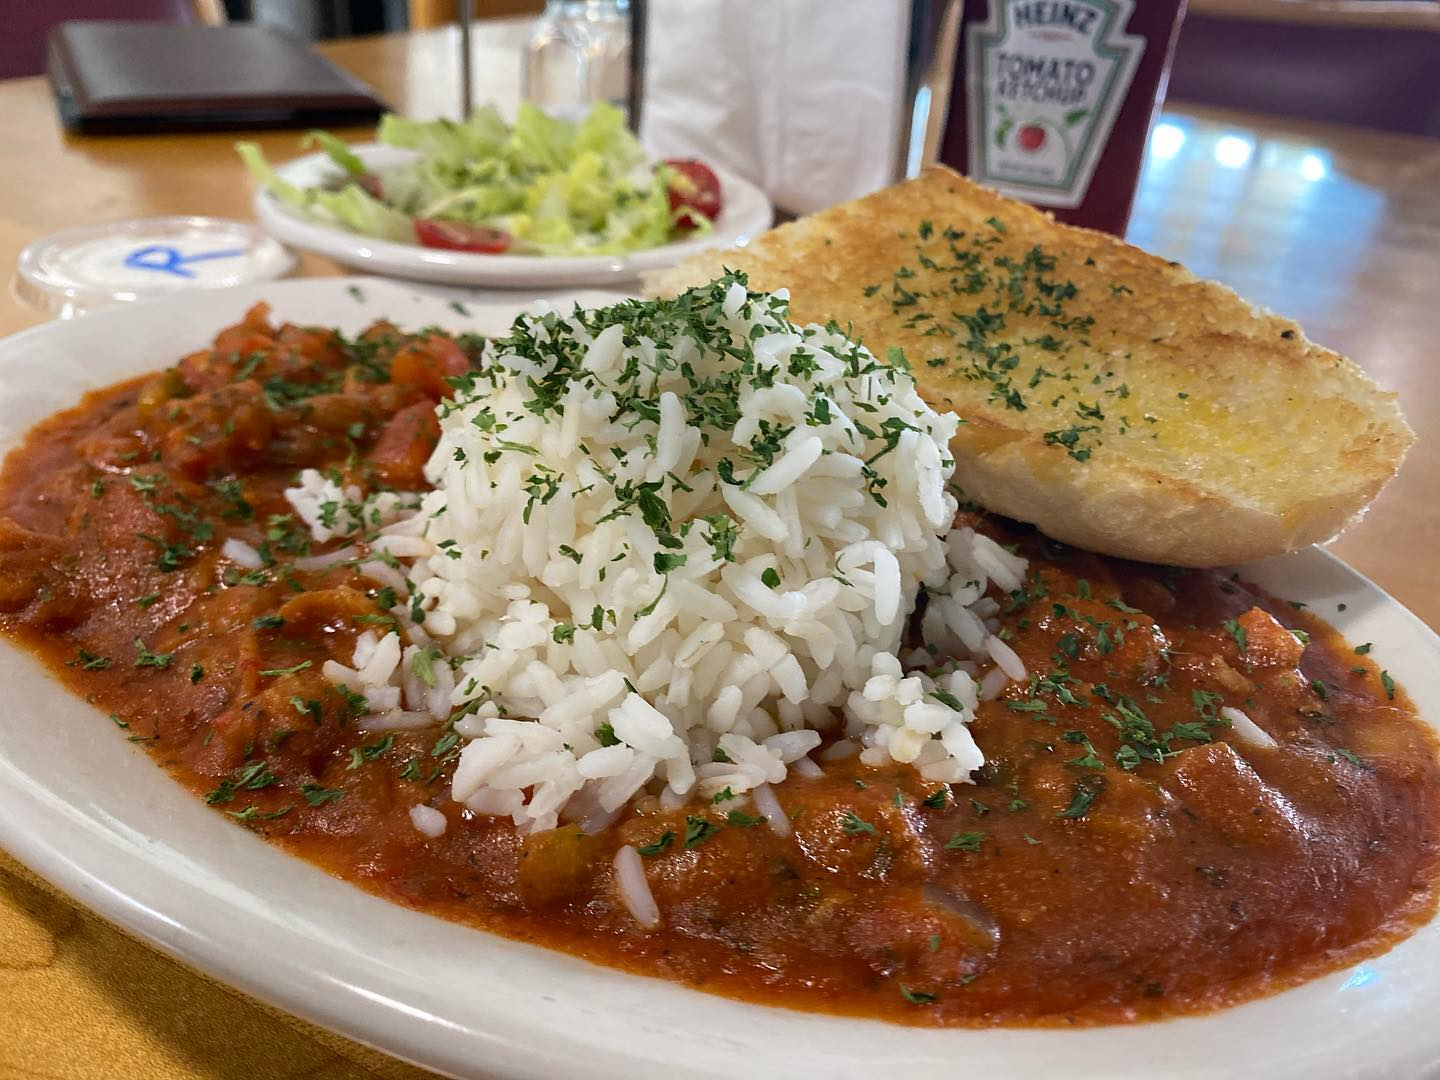 Crawfish Étouffée with rice and a side salad